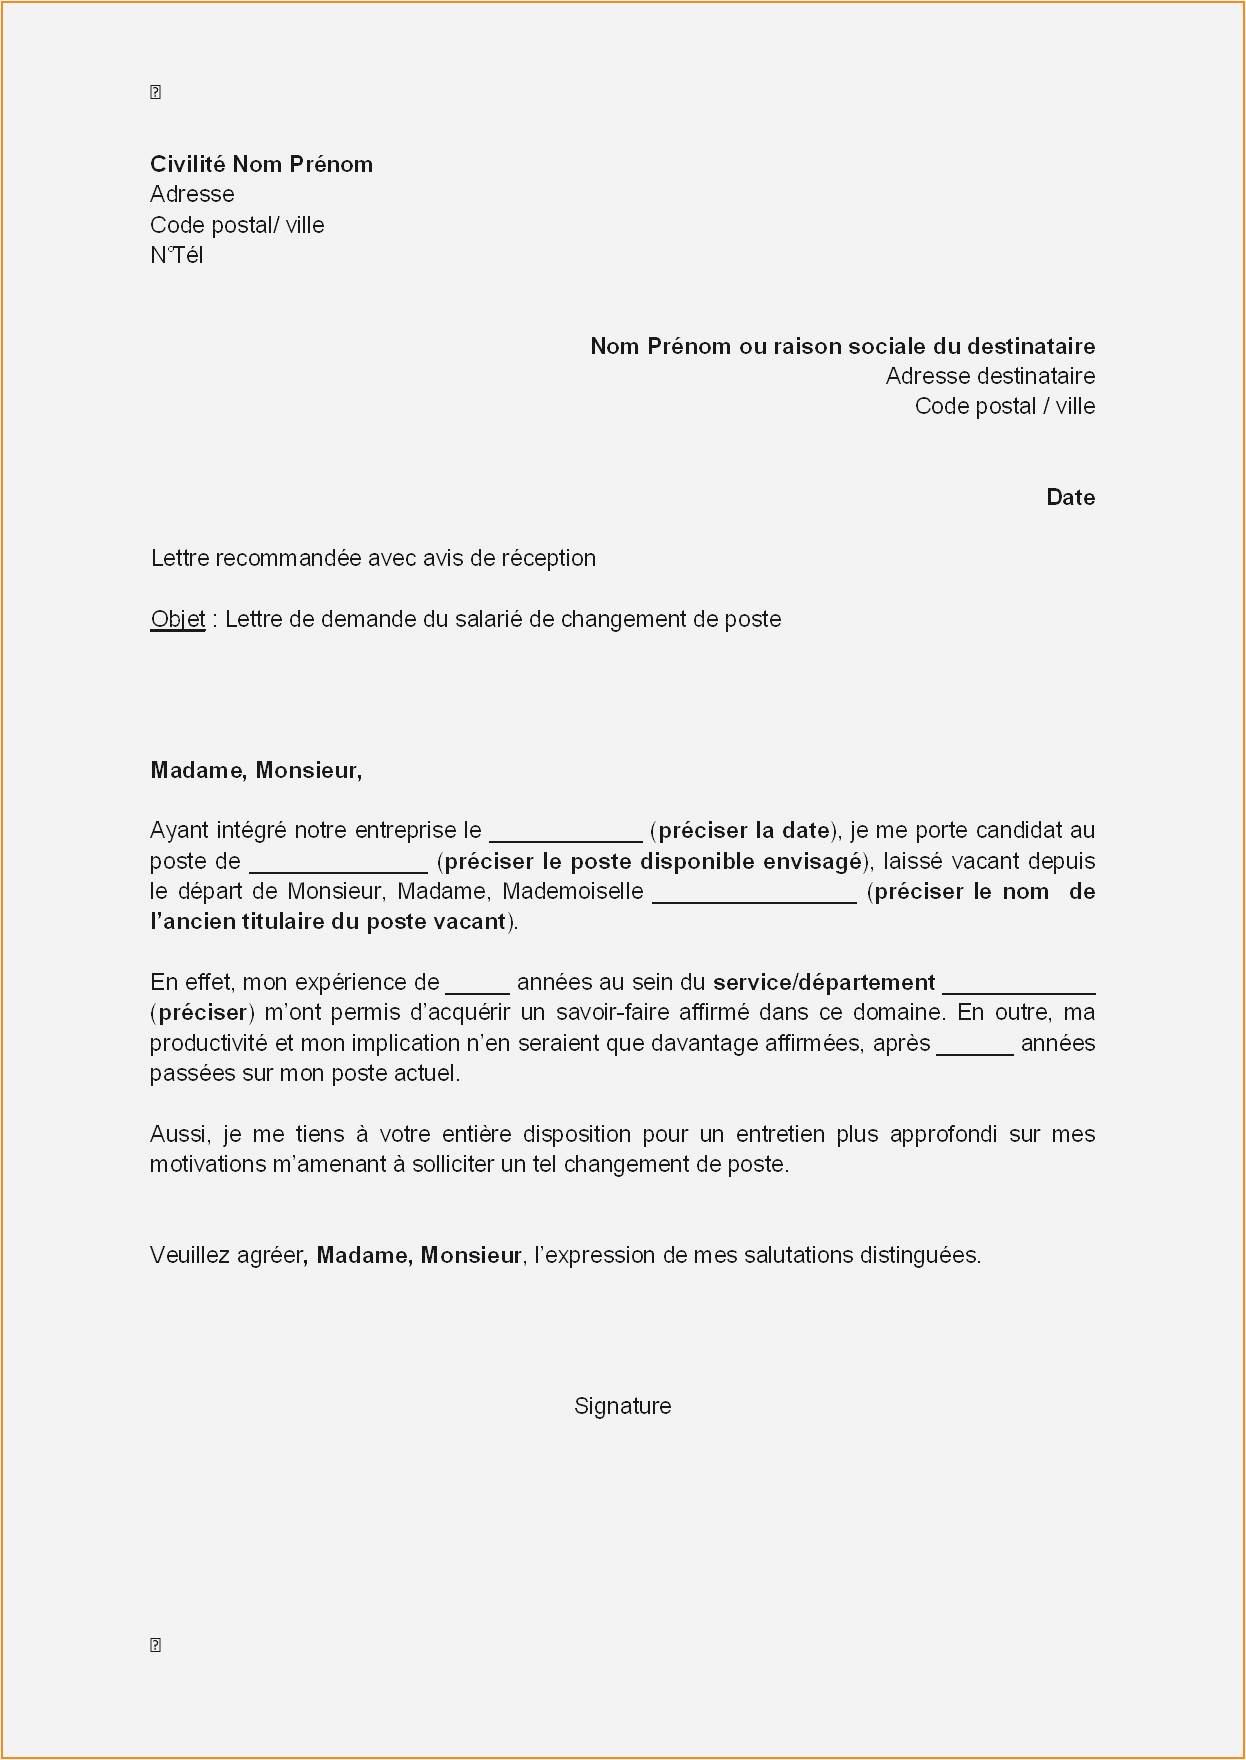 lettre de motivation adresse destinataire